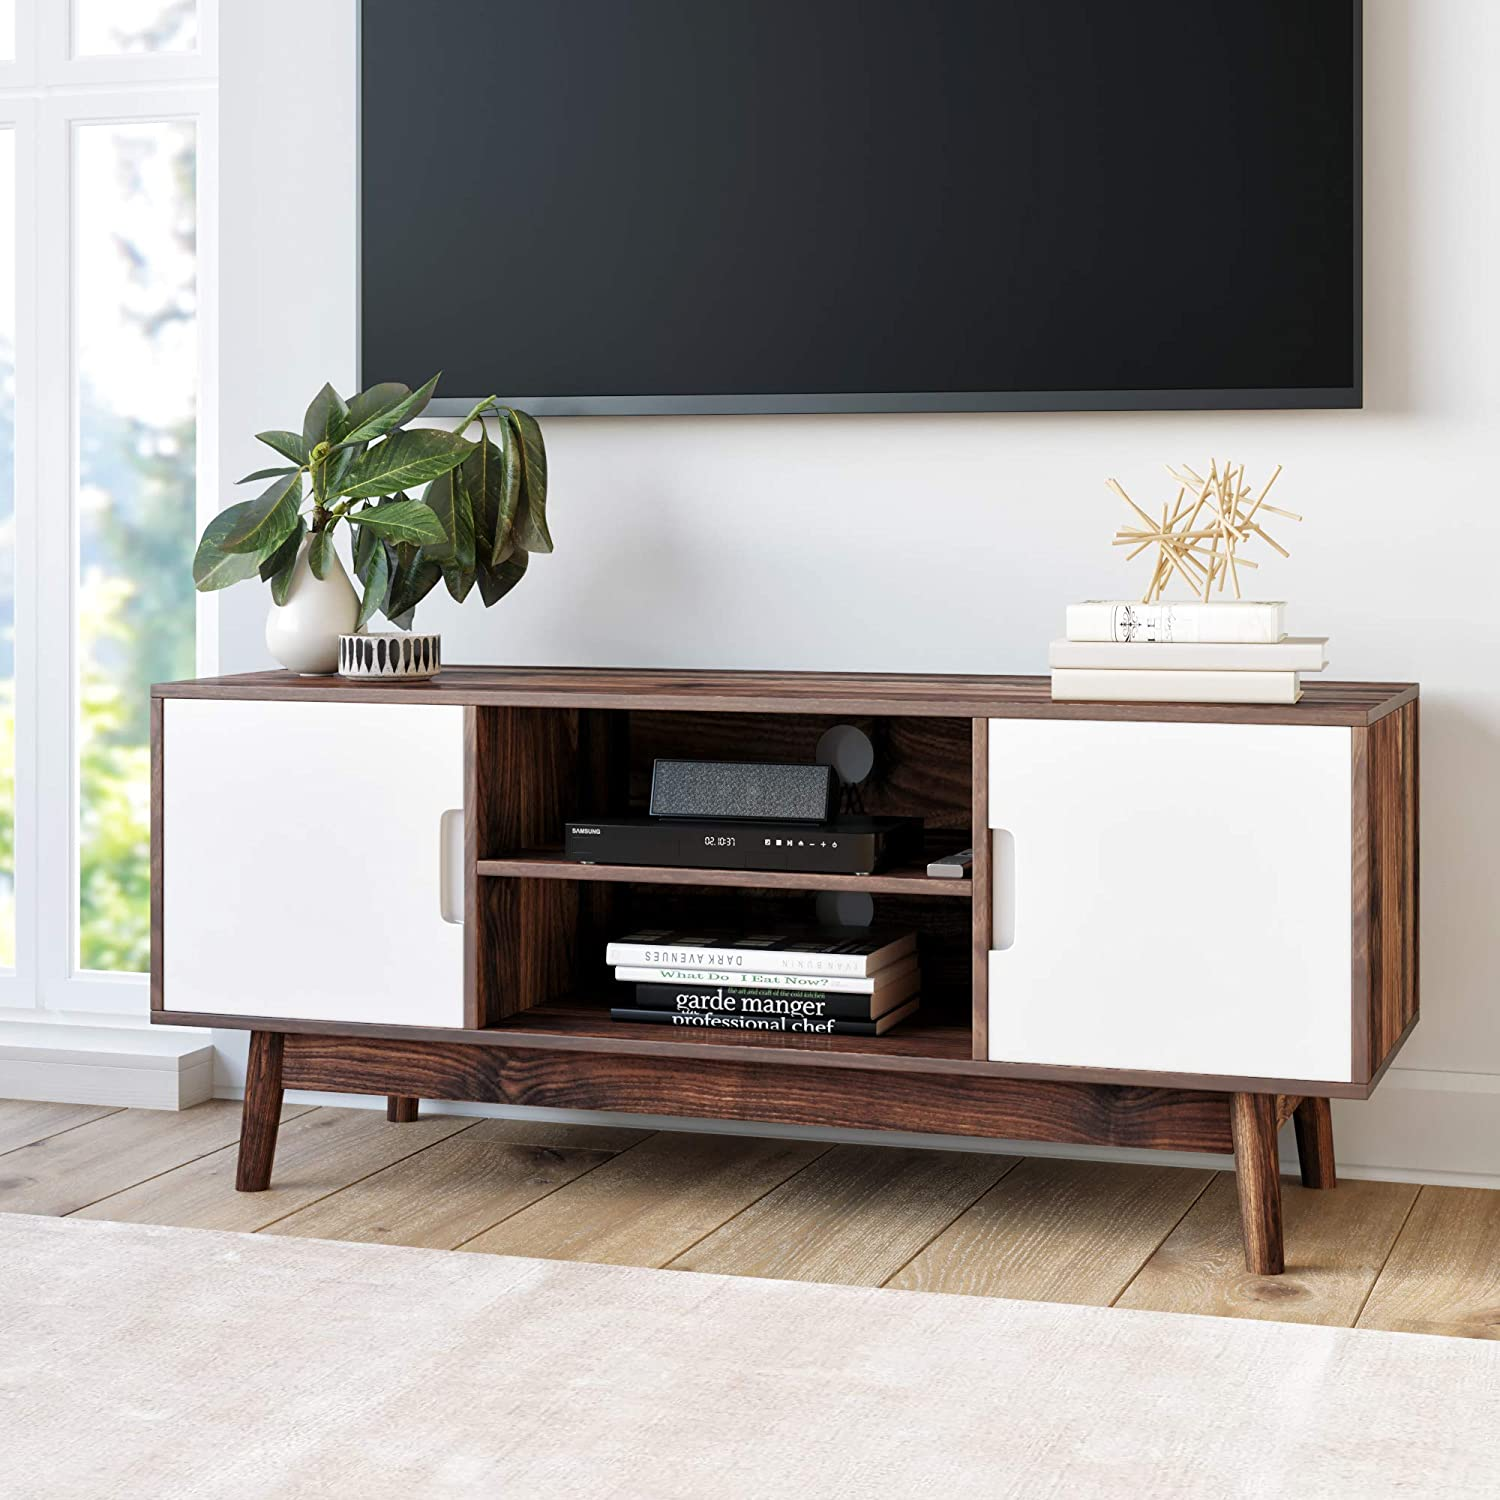 Nathan James 74401 Wesley Scandinavian TV Stand Media Console with Cabinet Doors, Walnut Brown